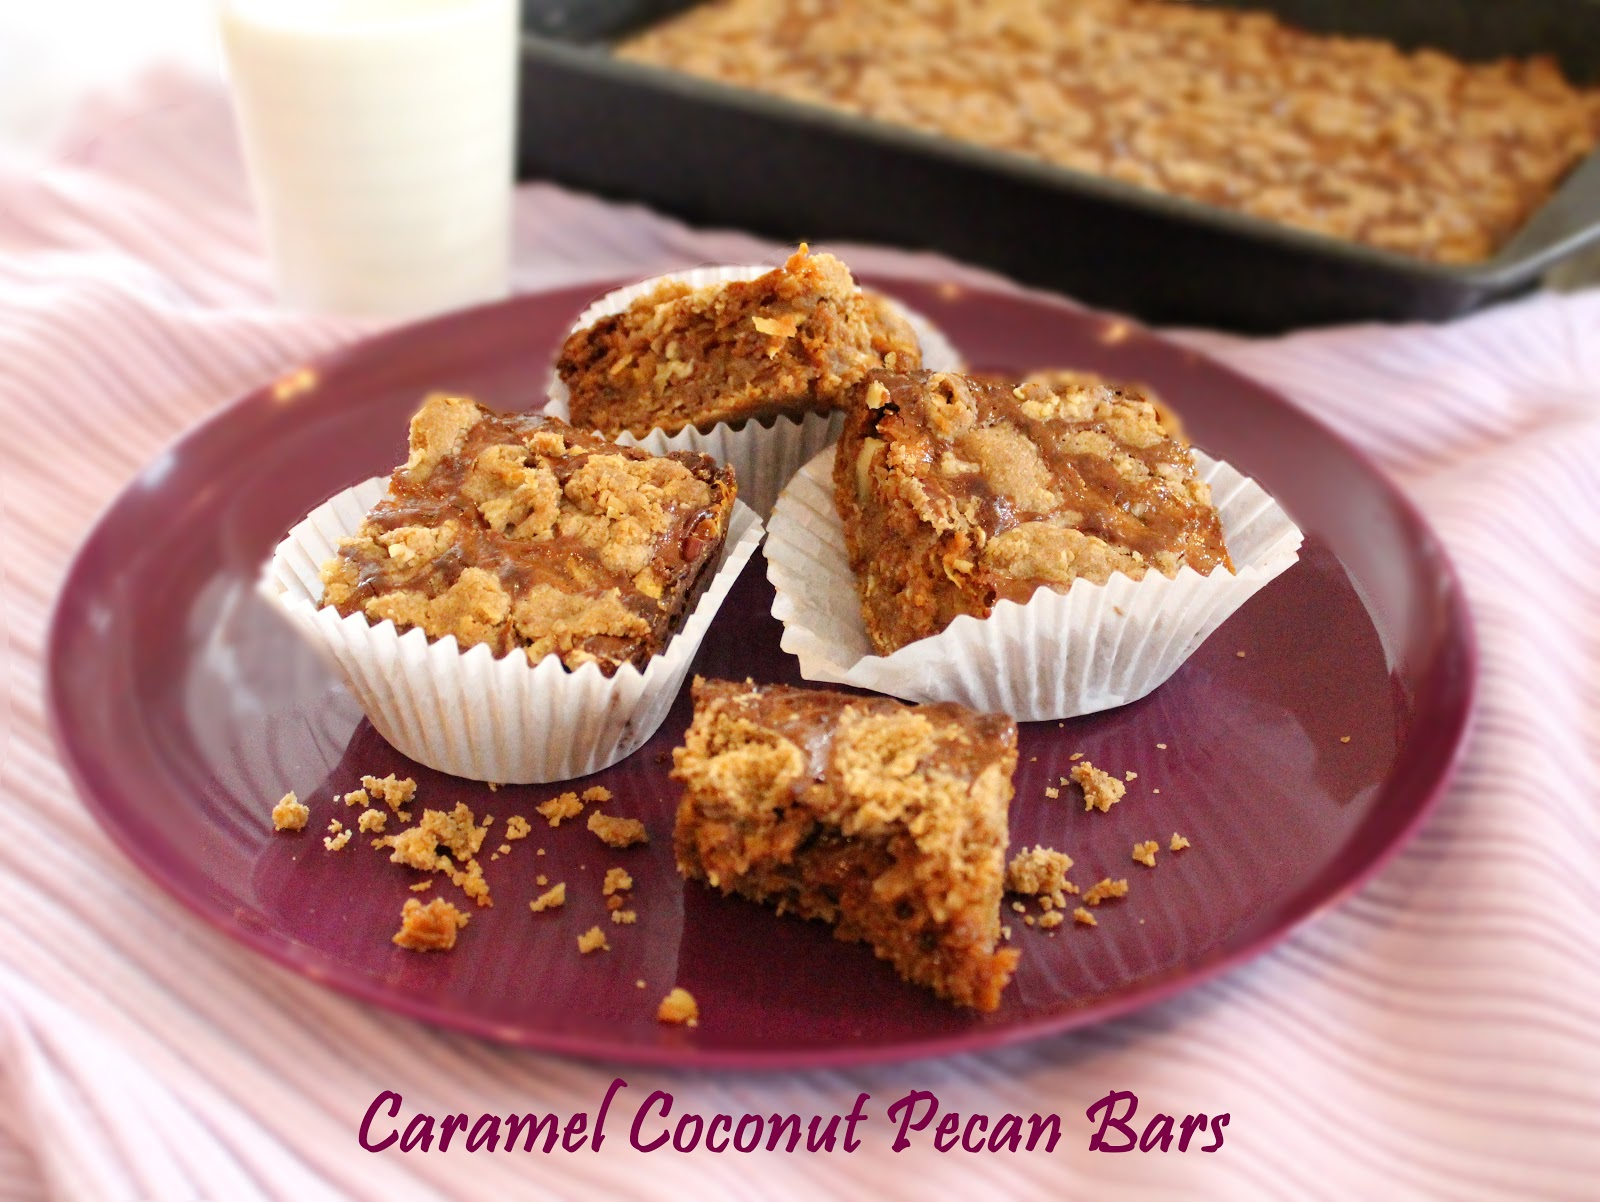 Melissa's Southern Style Kitchen: Caramel Coconut-Pecan Bars